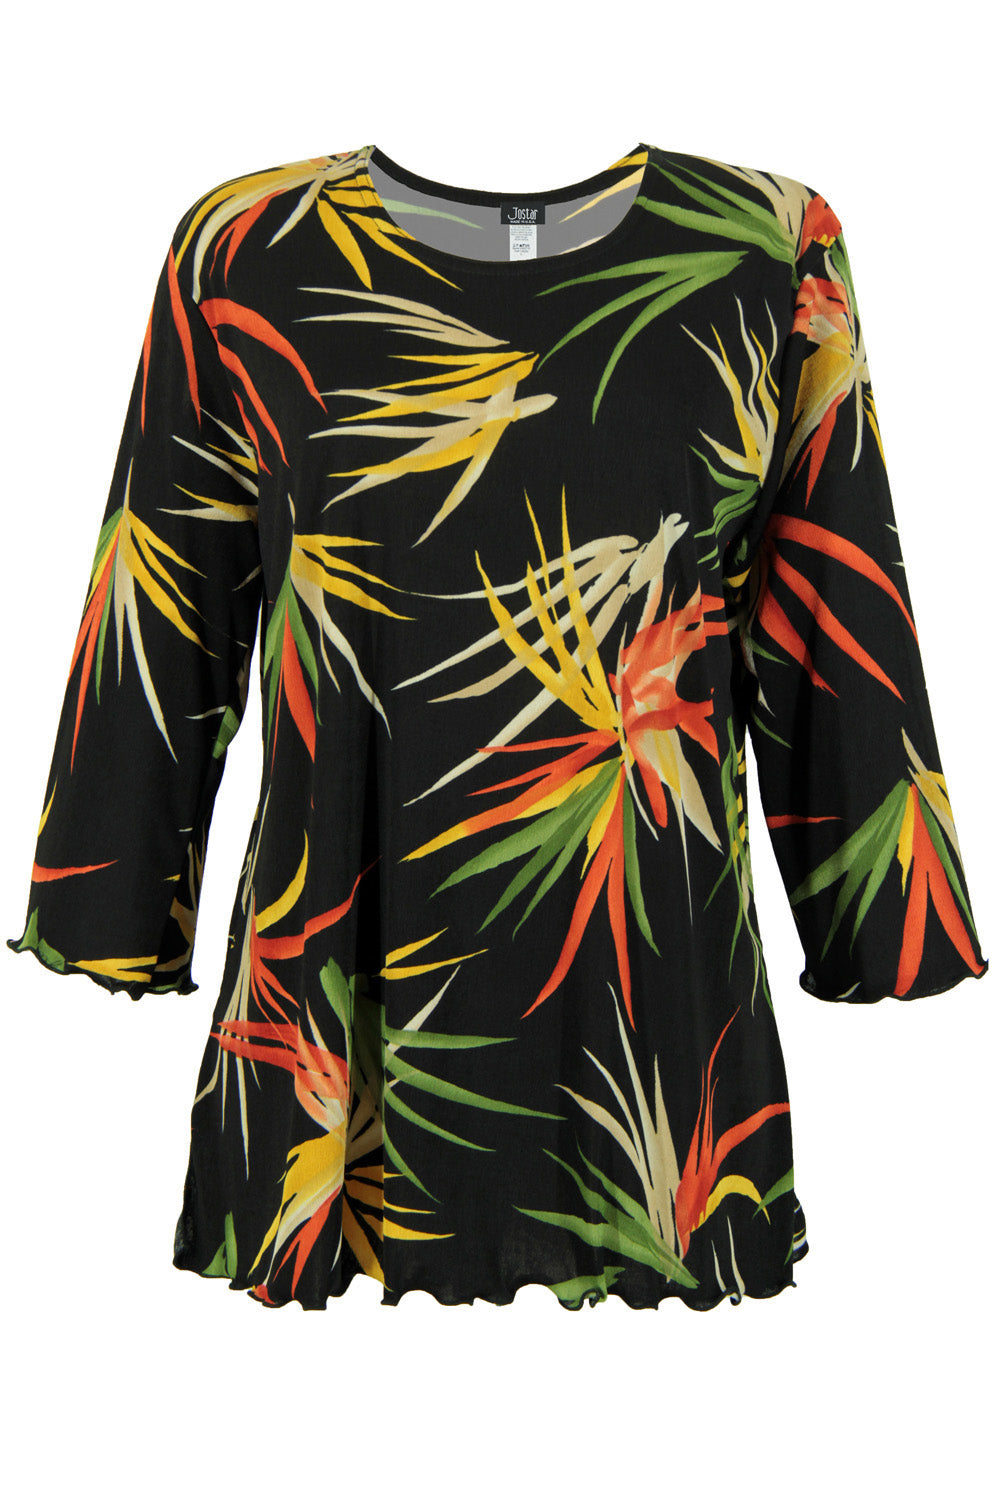 Jostar Women's Stretchy Merrow Top 3/4 Sleeve Print Plus, 158BN-QXP-W679 - Jostar Online